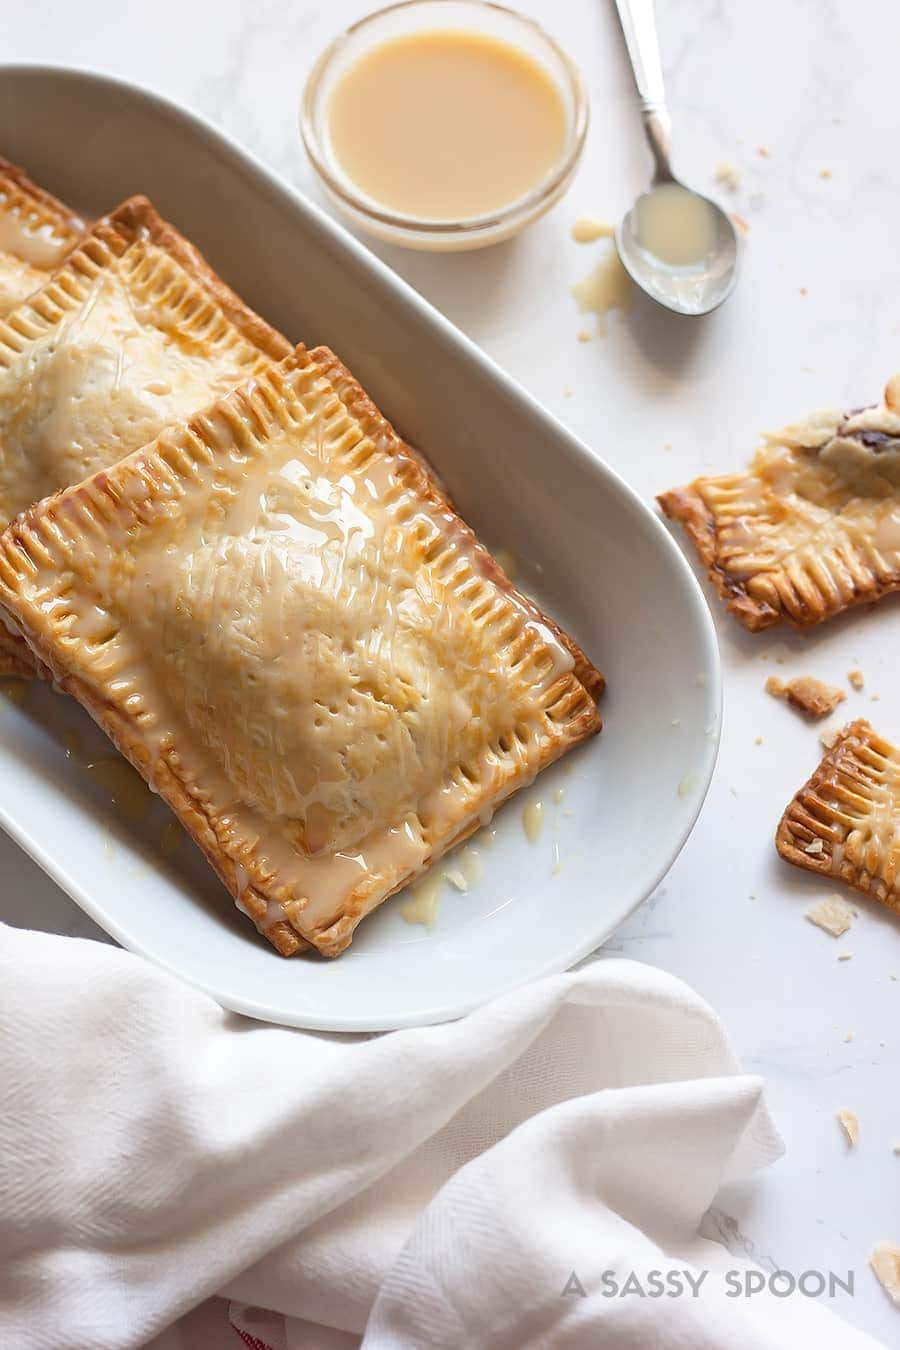 Super easy, semi-homemade guava and cream cheese pop tarts made using refrigerated pie crustthen topped with a drizzle of condensed milk. Theperfect combinationof a Cuban treat on an American classic.